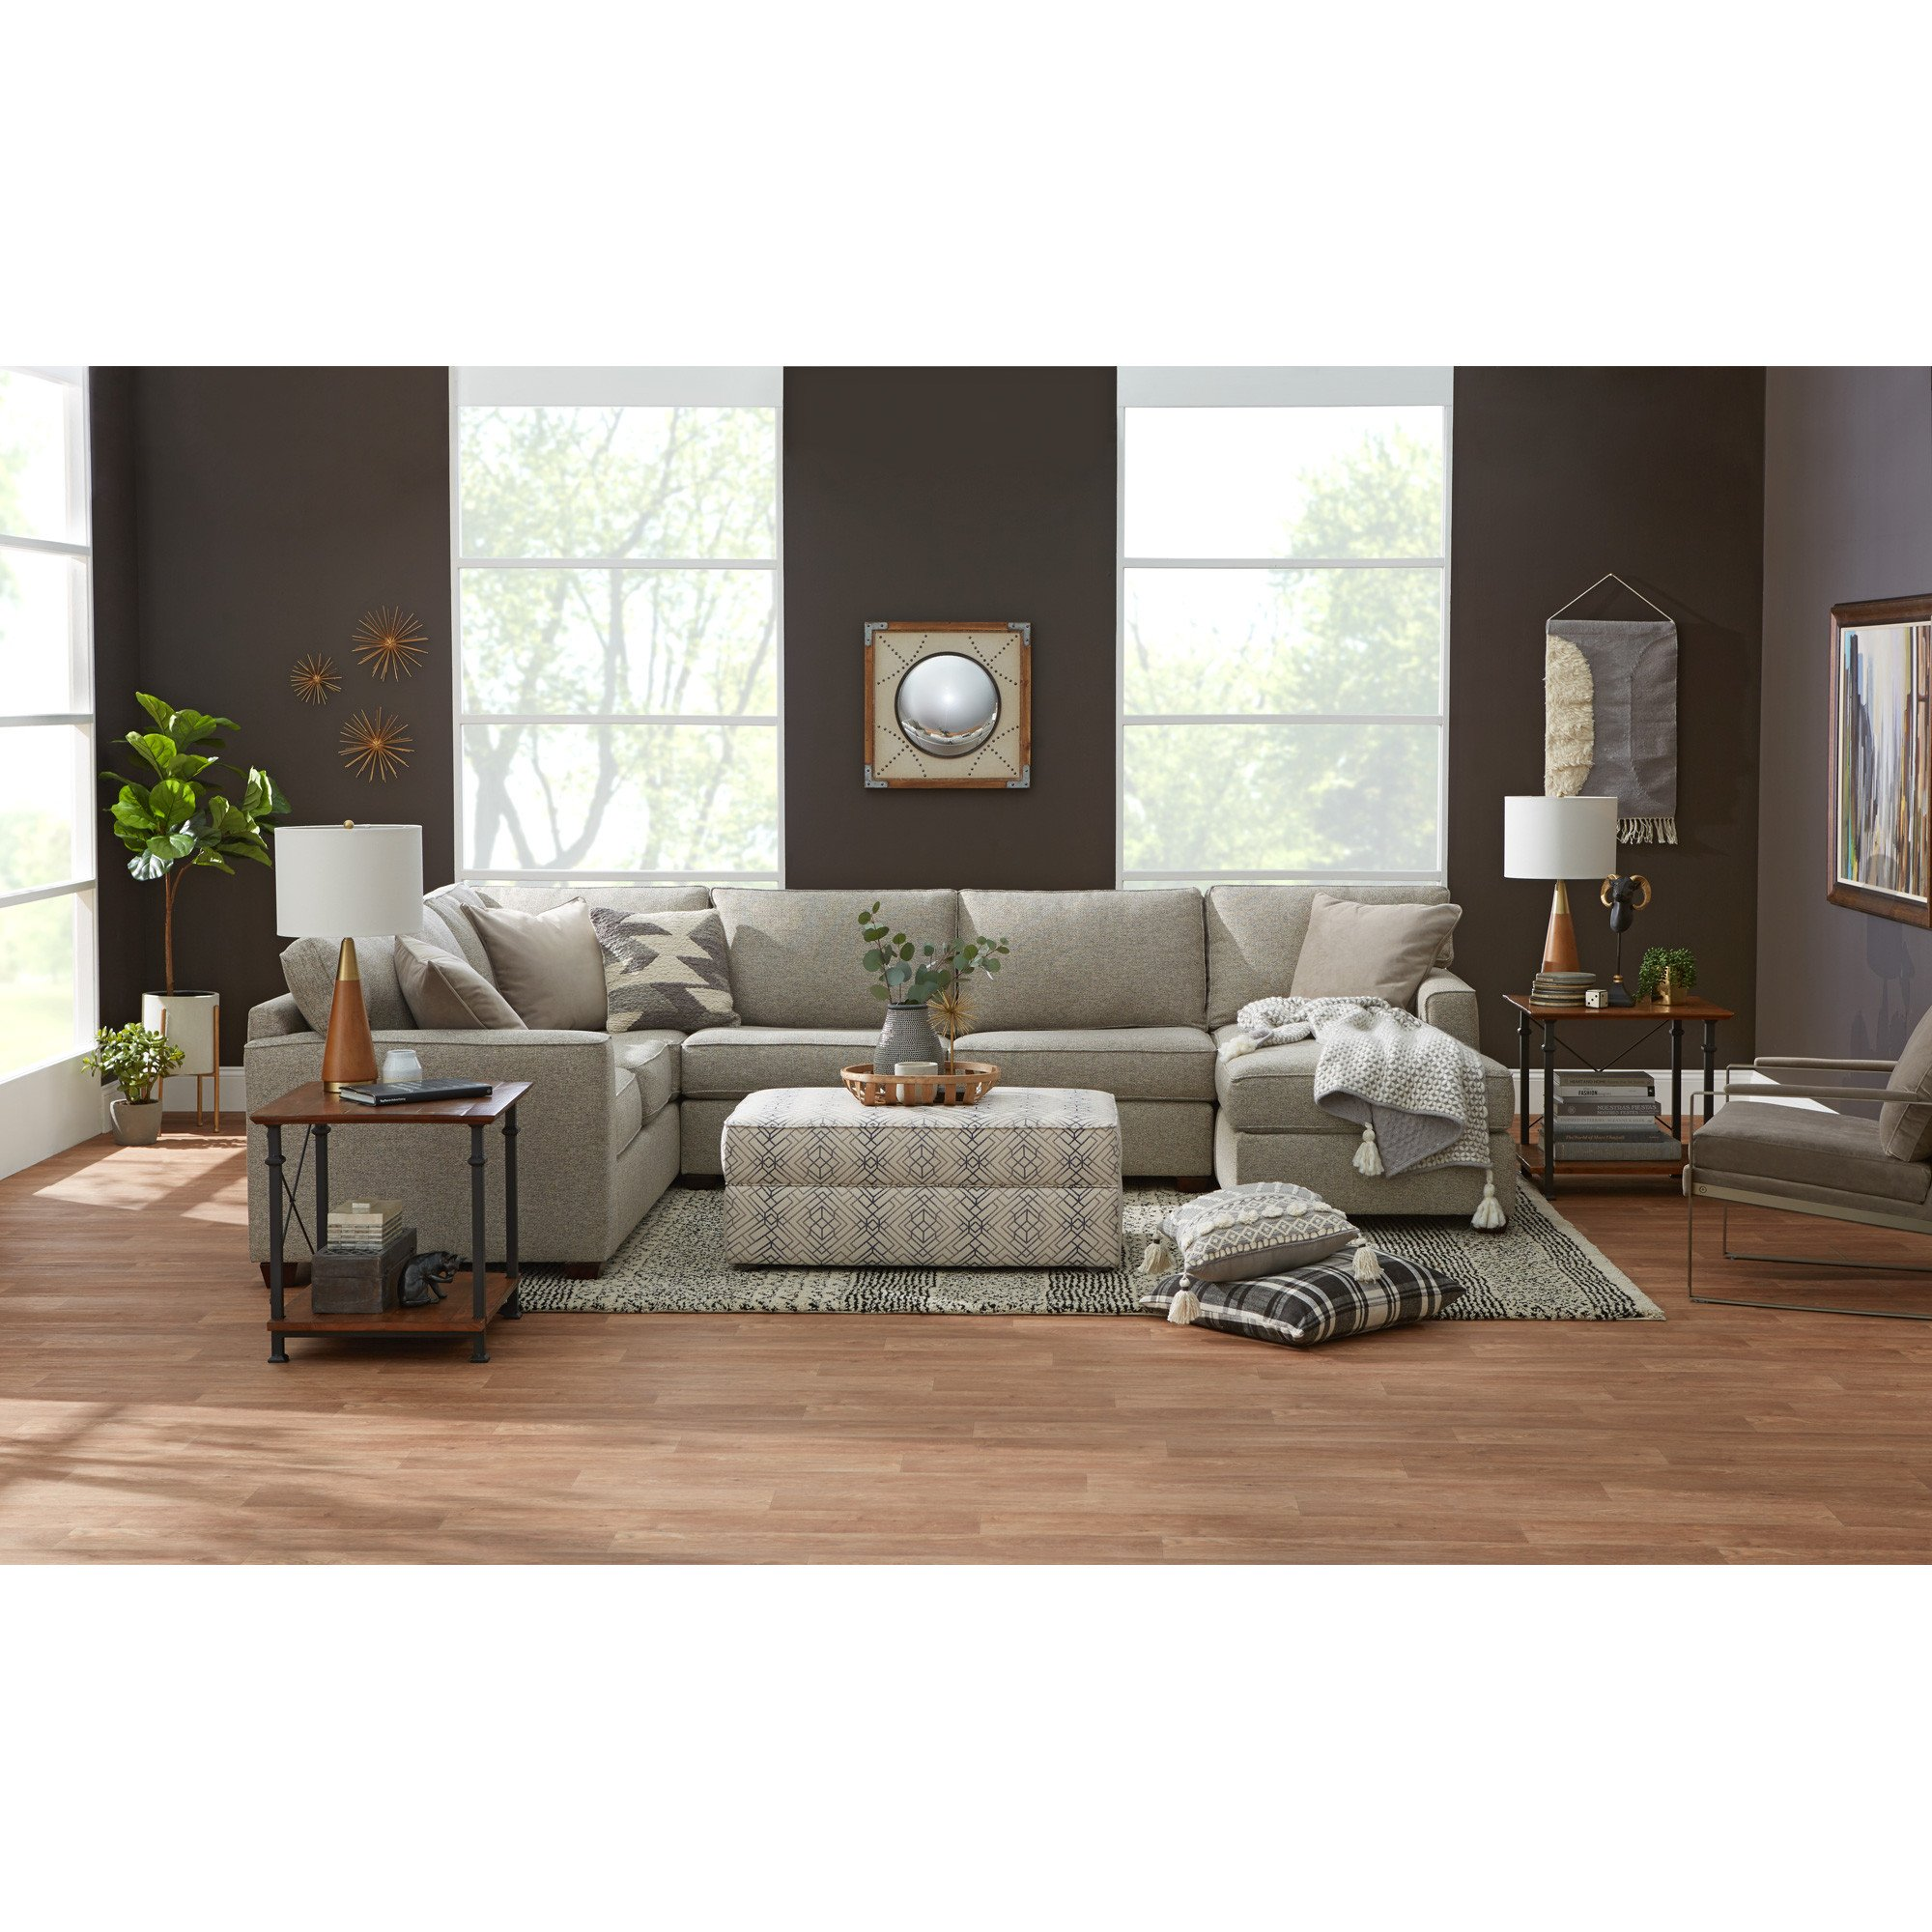 3 Pice Bedroom Set Best Of Rise 3 Piece Right Sectional Living Rooms